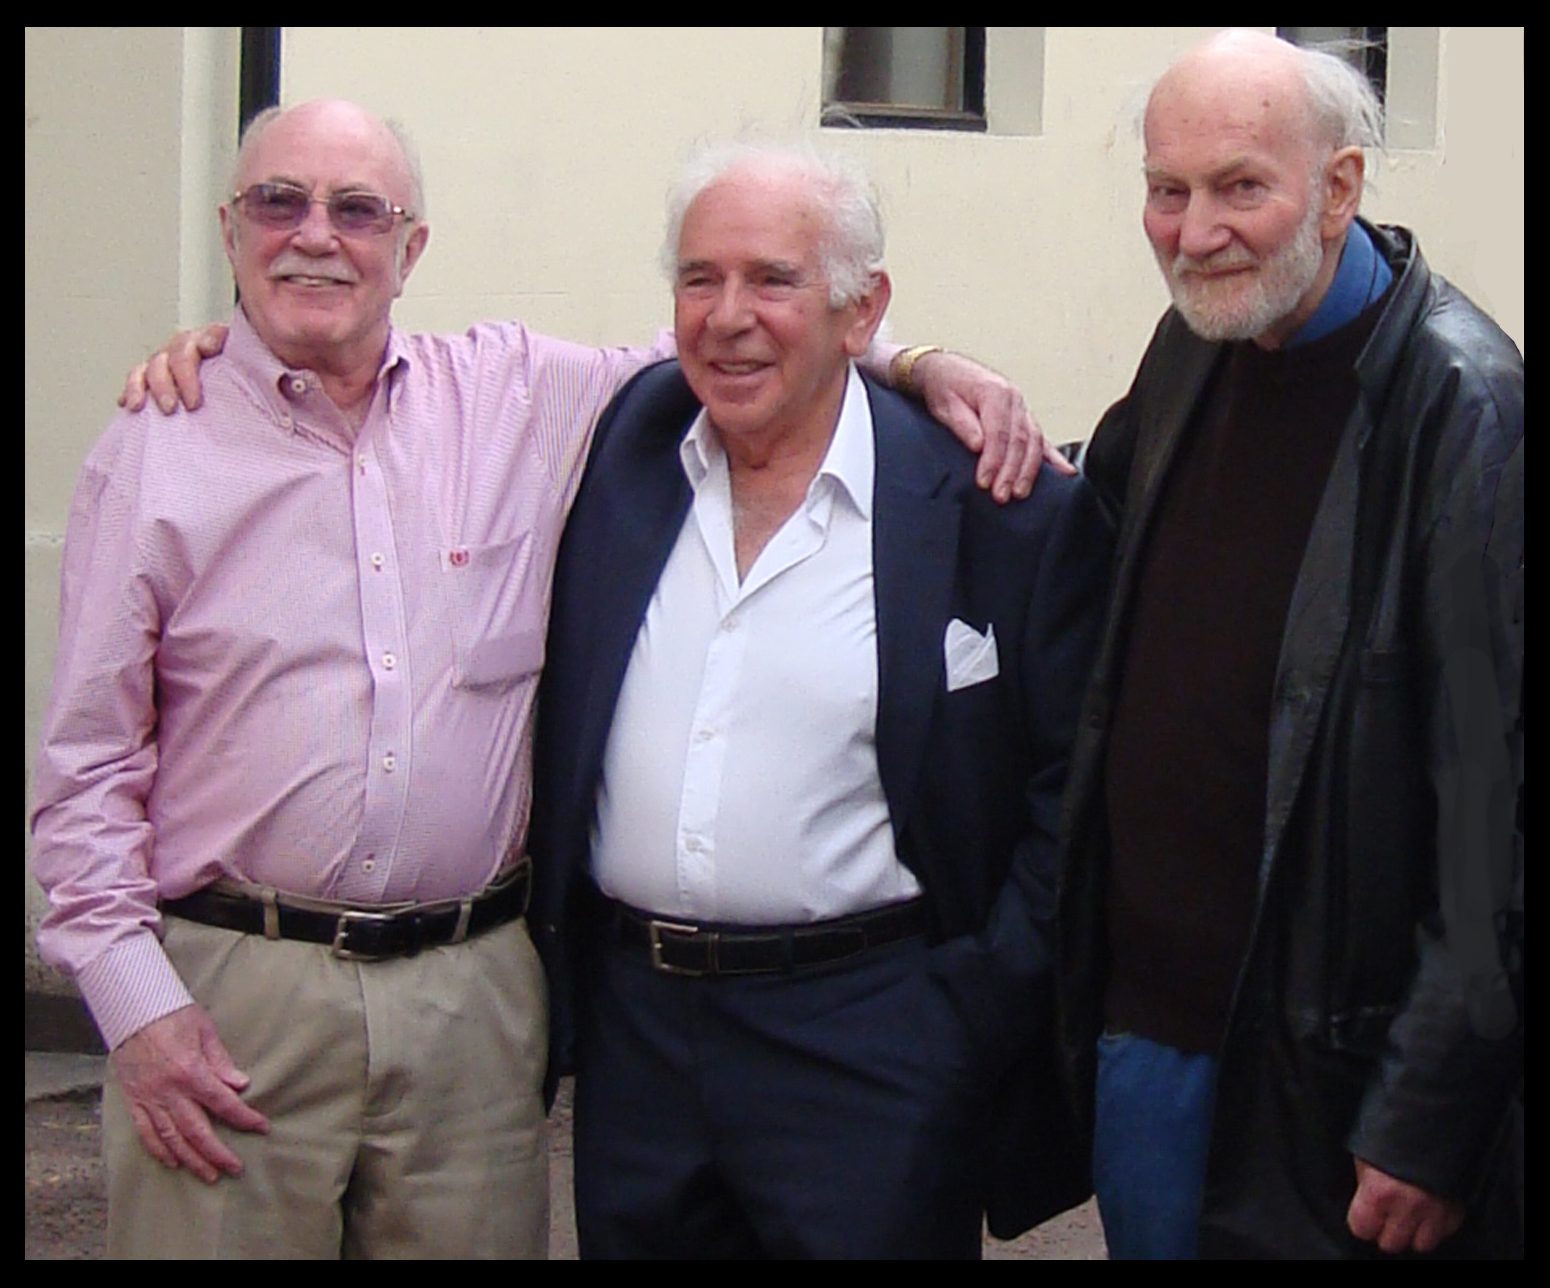 Wally Nash (left) and Keith (right) in 2011. The gentleman in the centre is Marcus Levey who owned the Dolce Vita up to 1965.